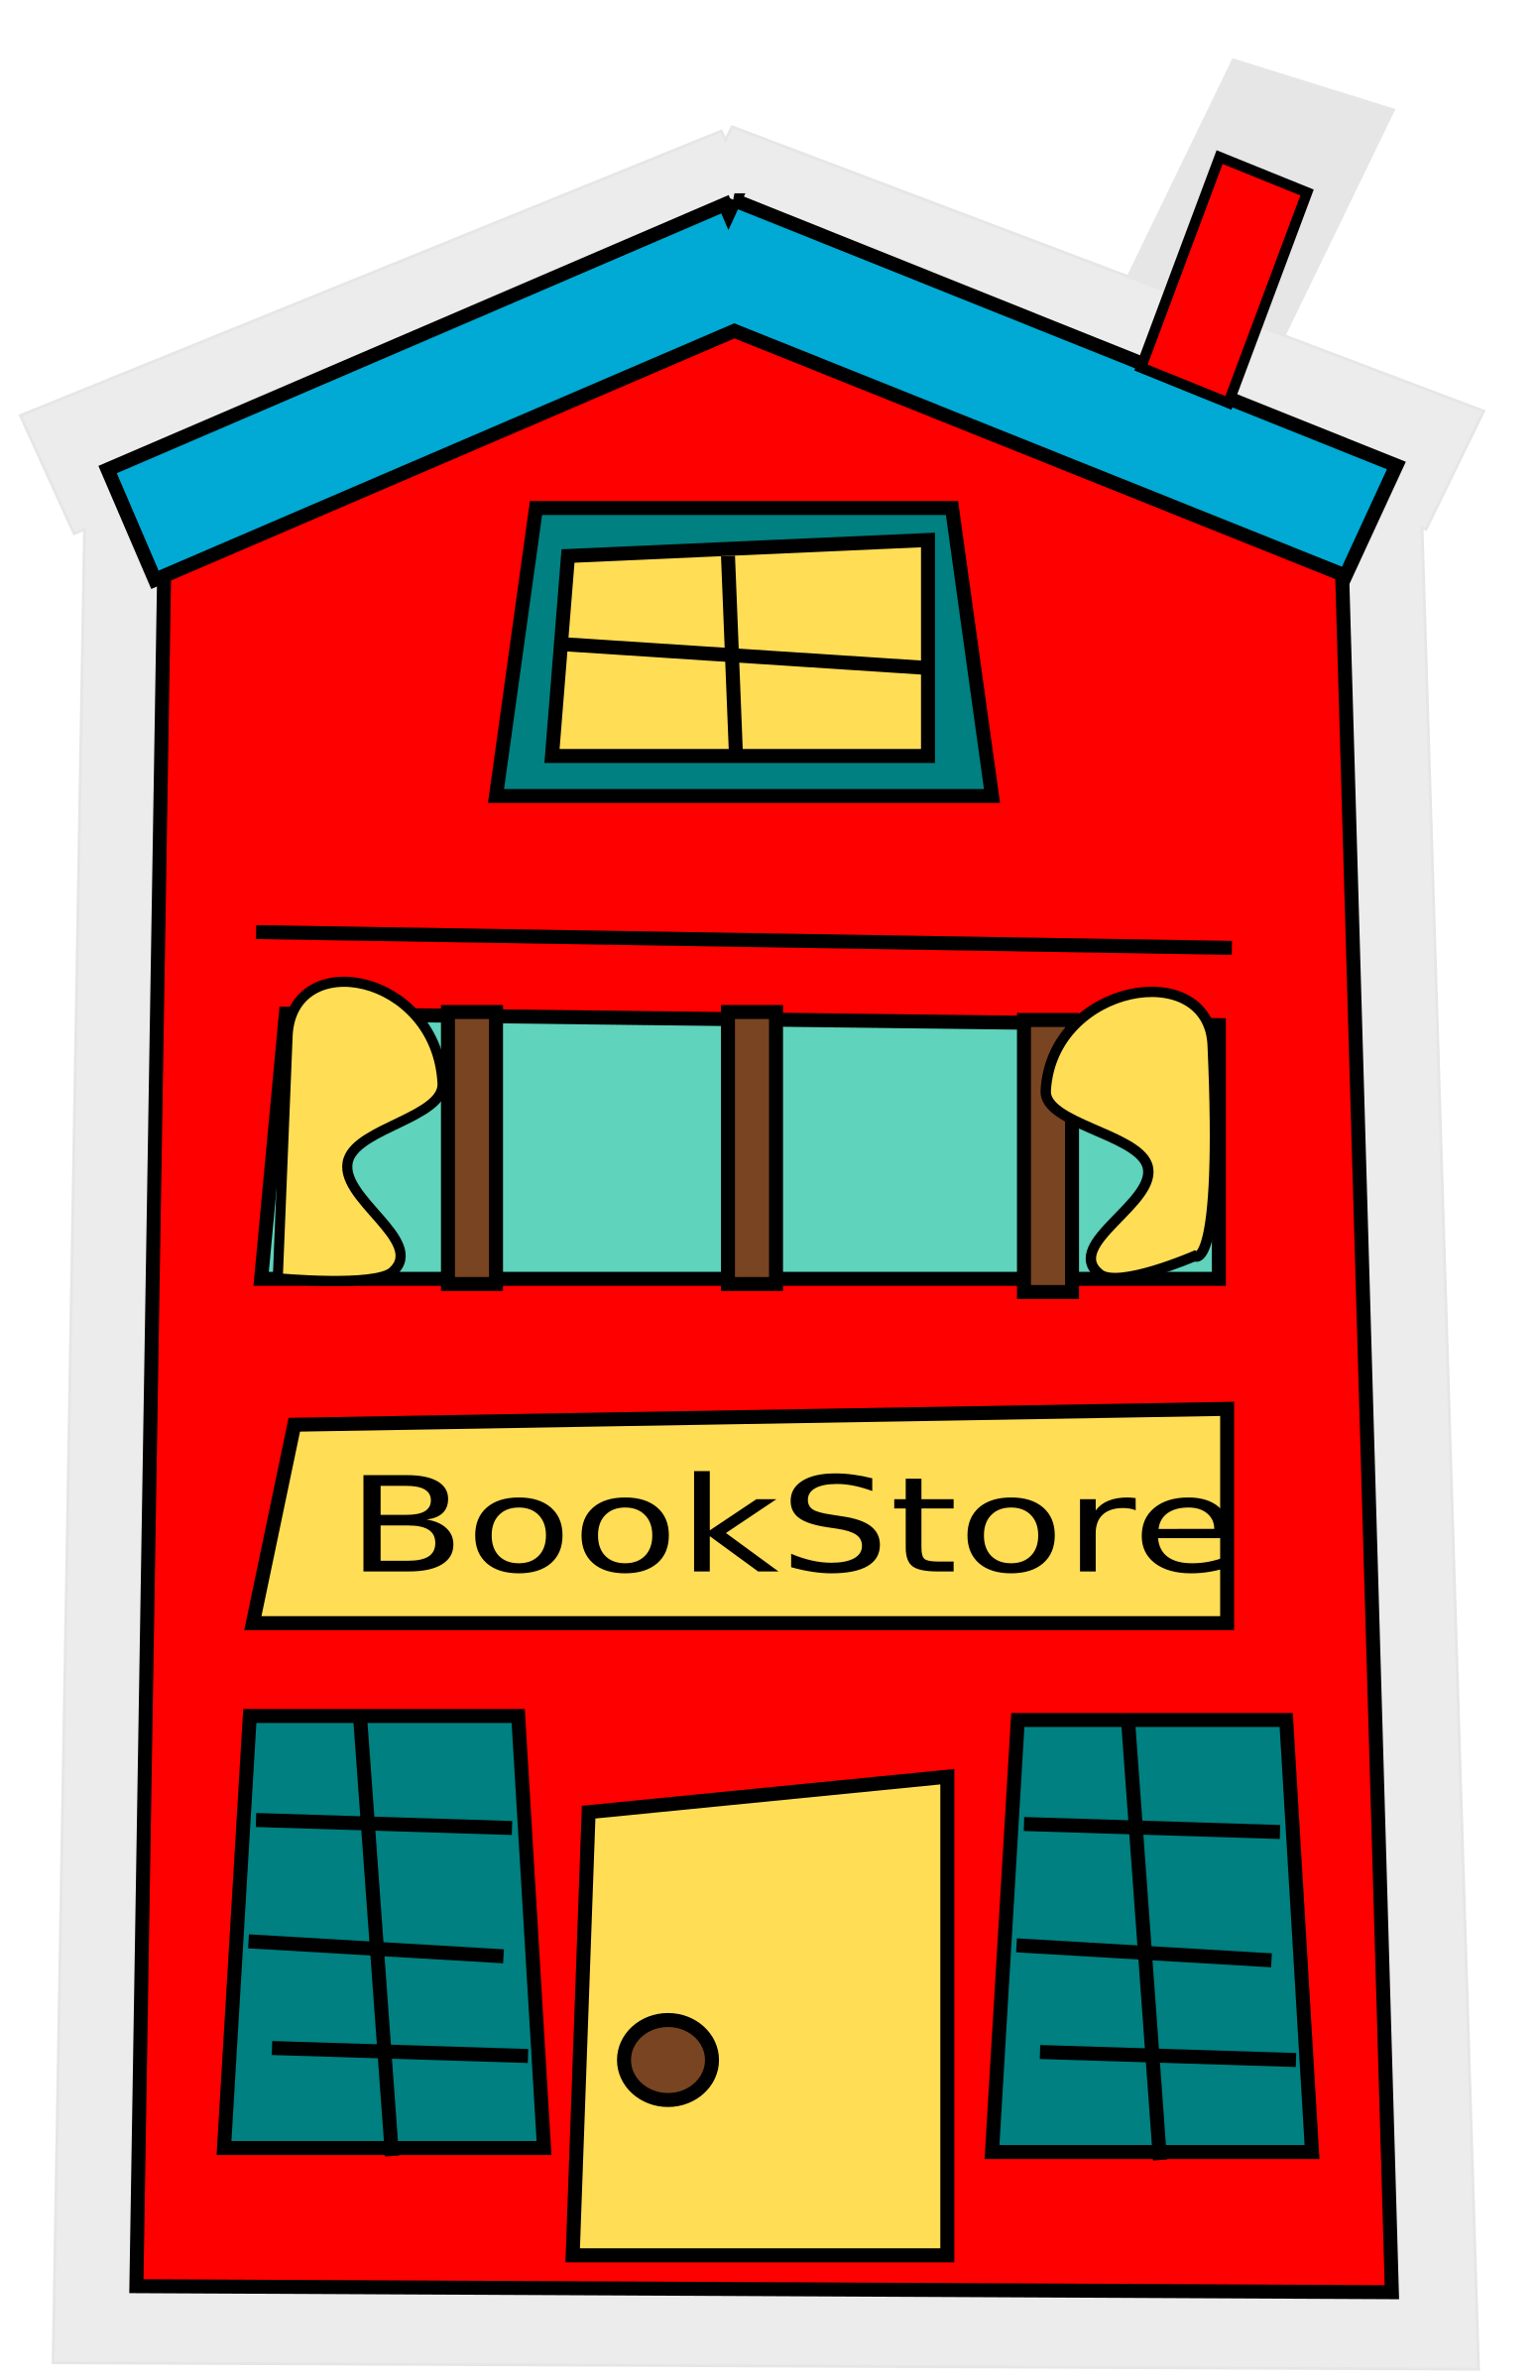 Free Cartoon Books Cliparts, Download Free Clip Art, Free.